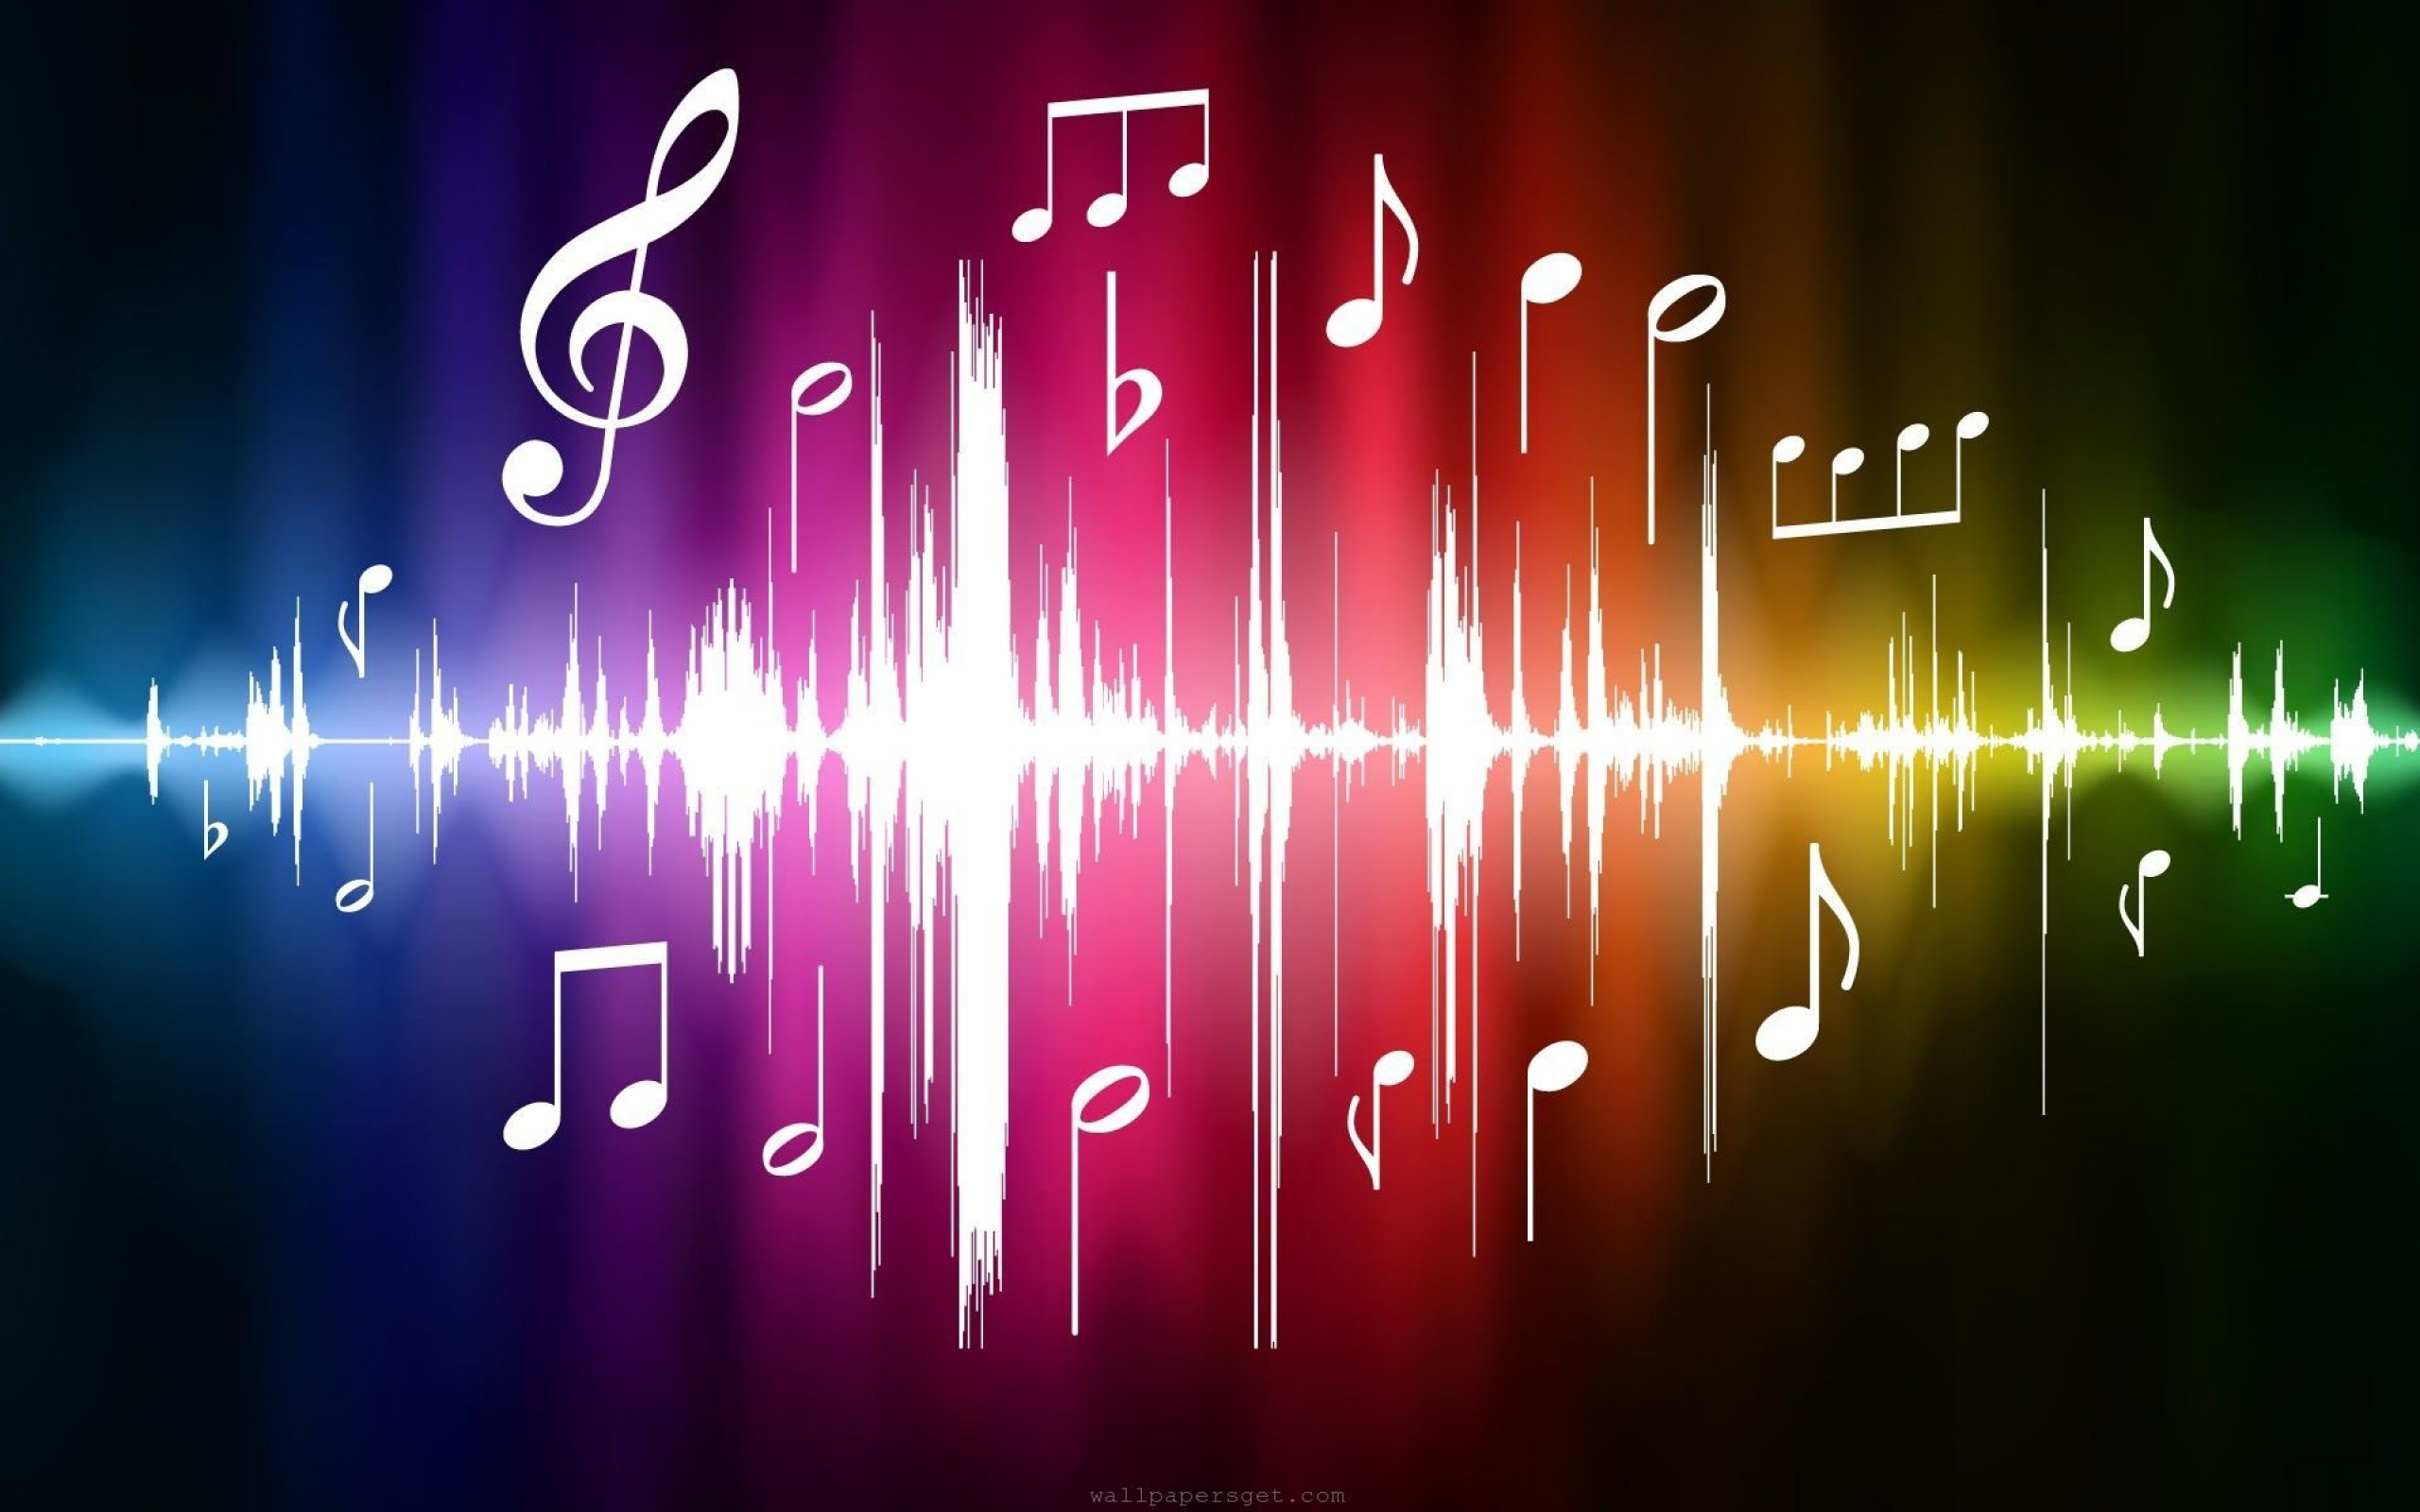 hd-wallpapers-sound-waves-musical-note-desktop-2560?